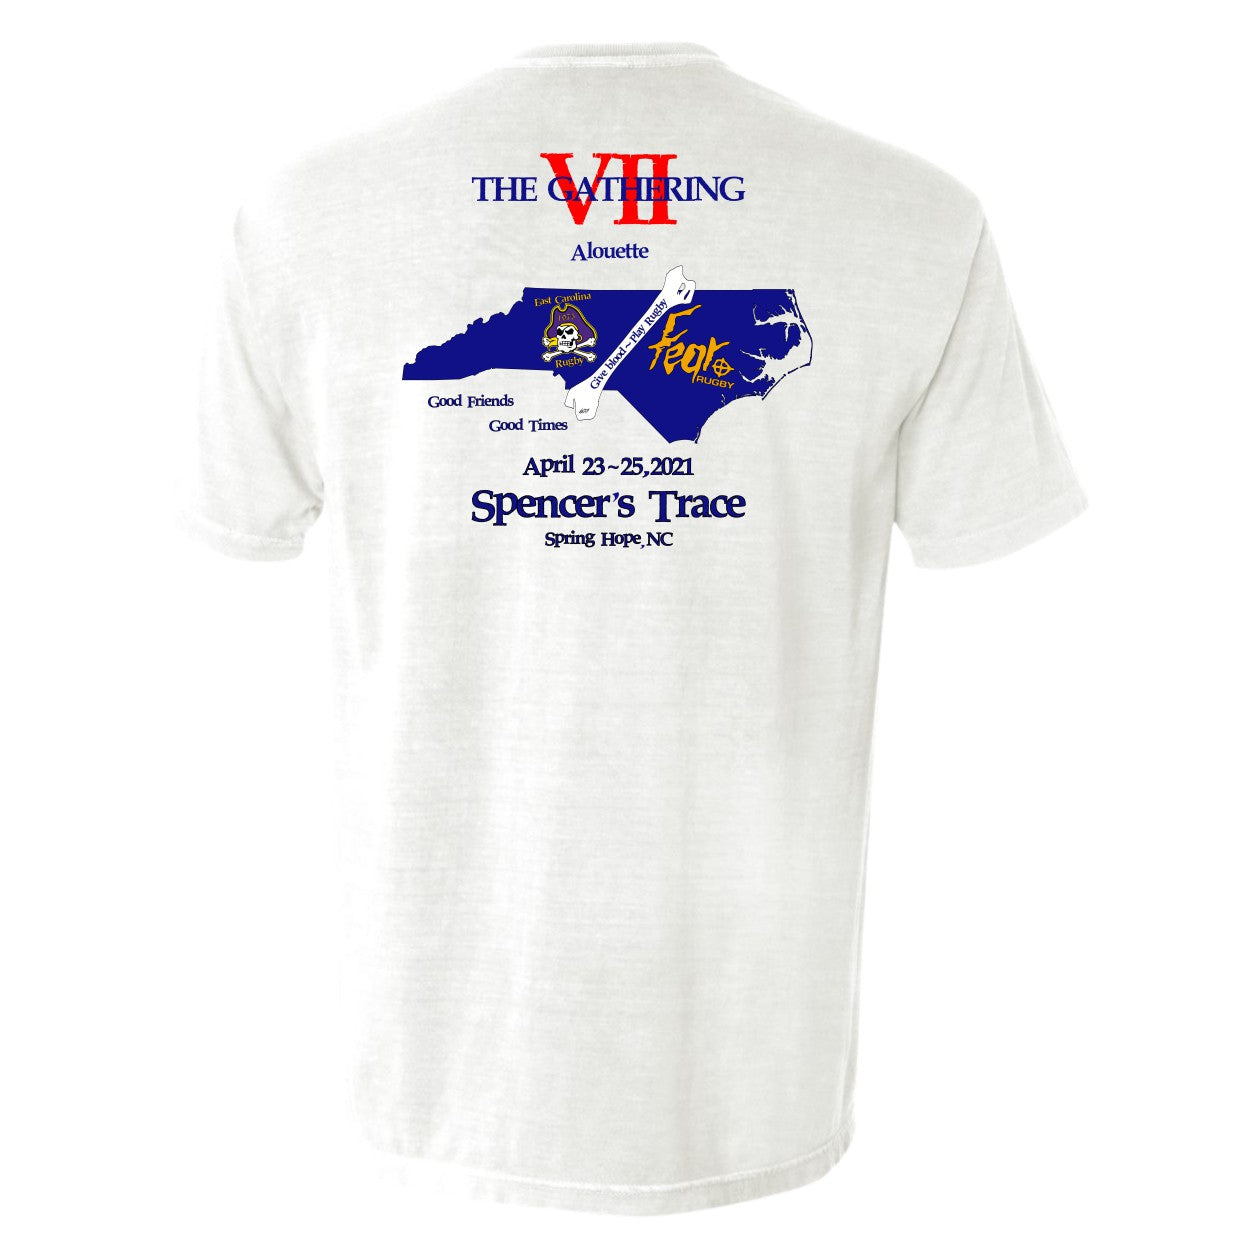 The Official Gathering VII Short Sleeve Pocket Tee by Comfort Colors